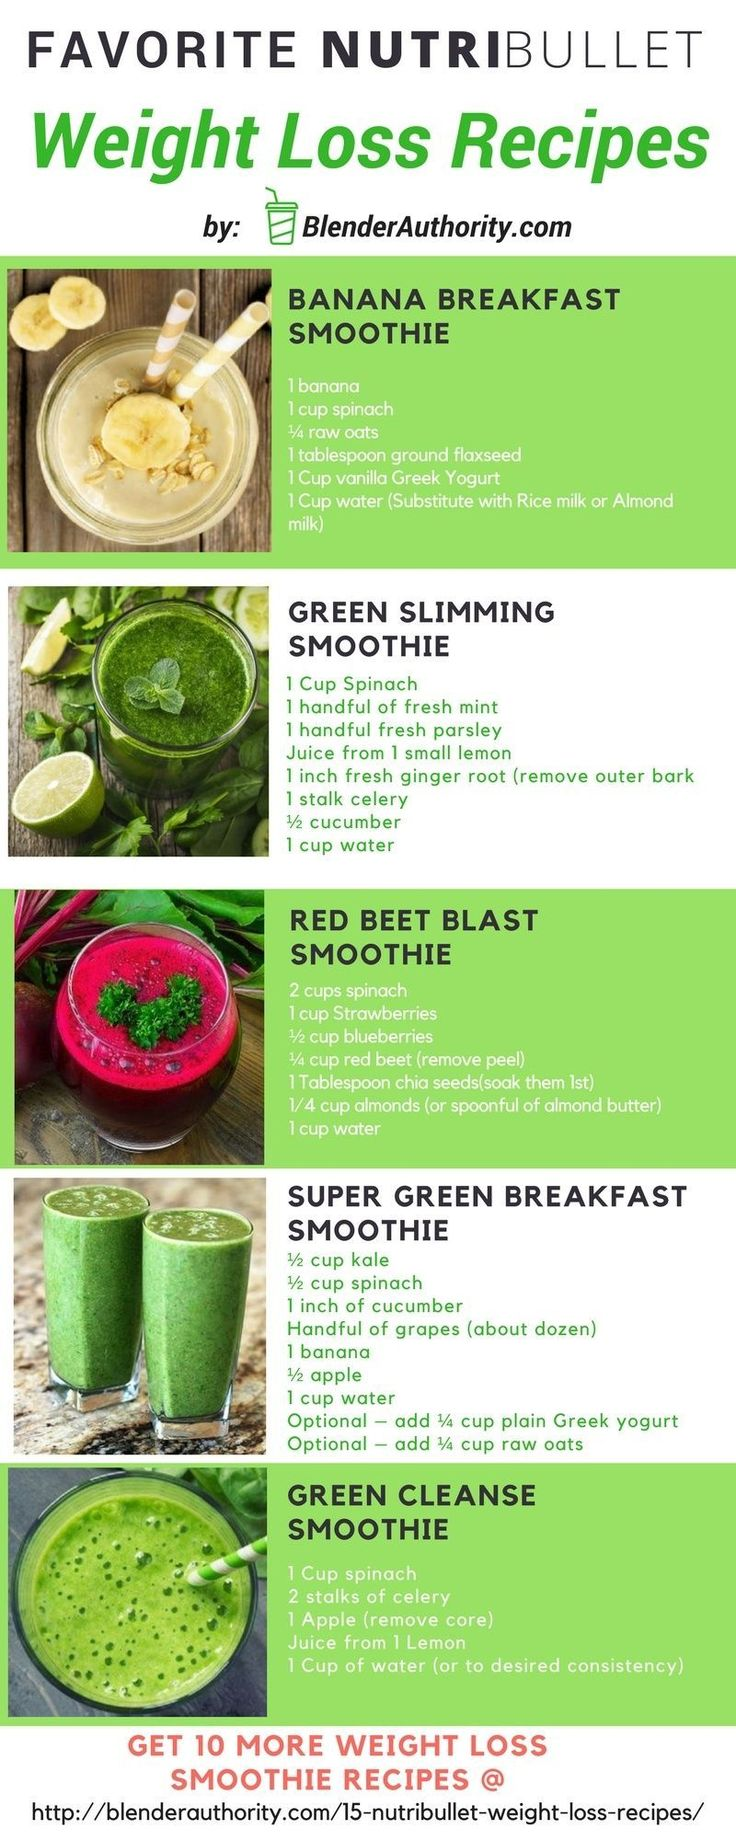 Nutribullet recipes for weight loss smoothies #smoothieweightloss #fastweightloss